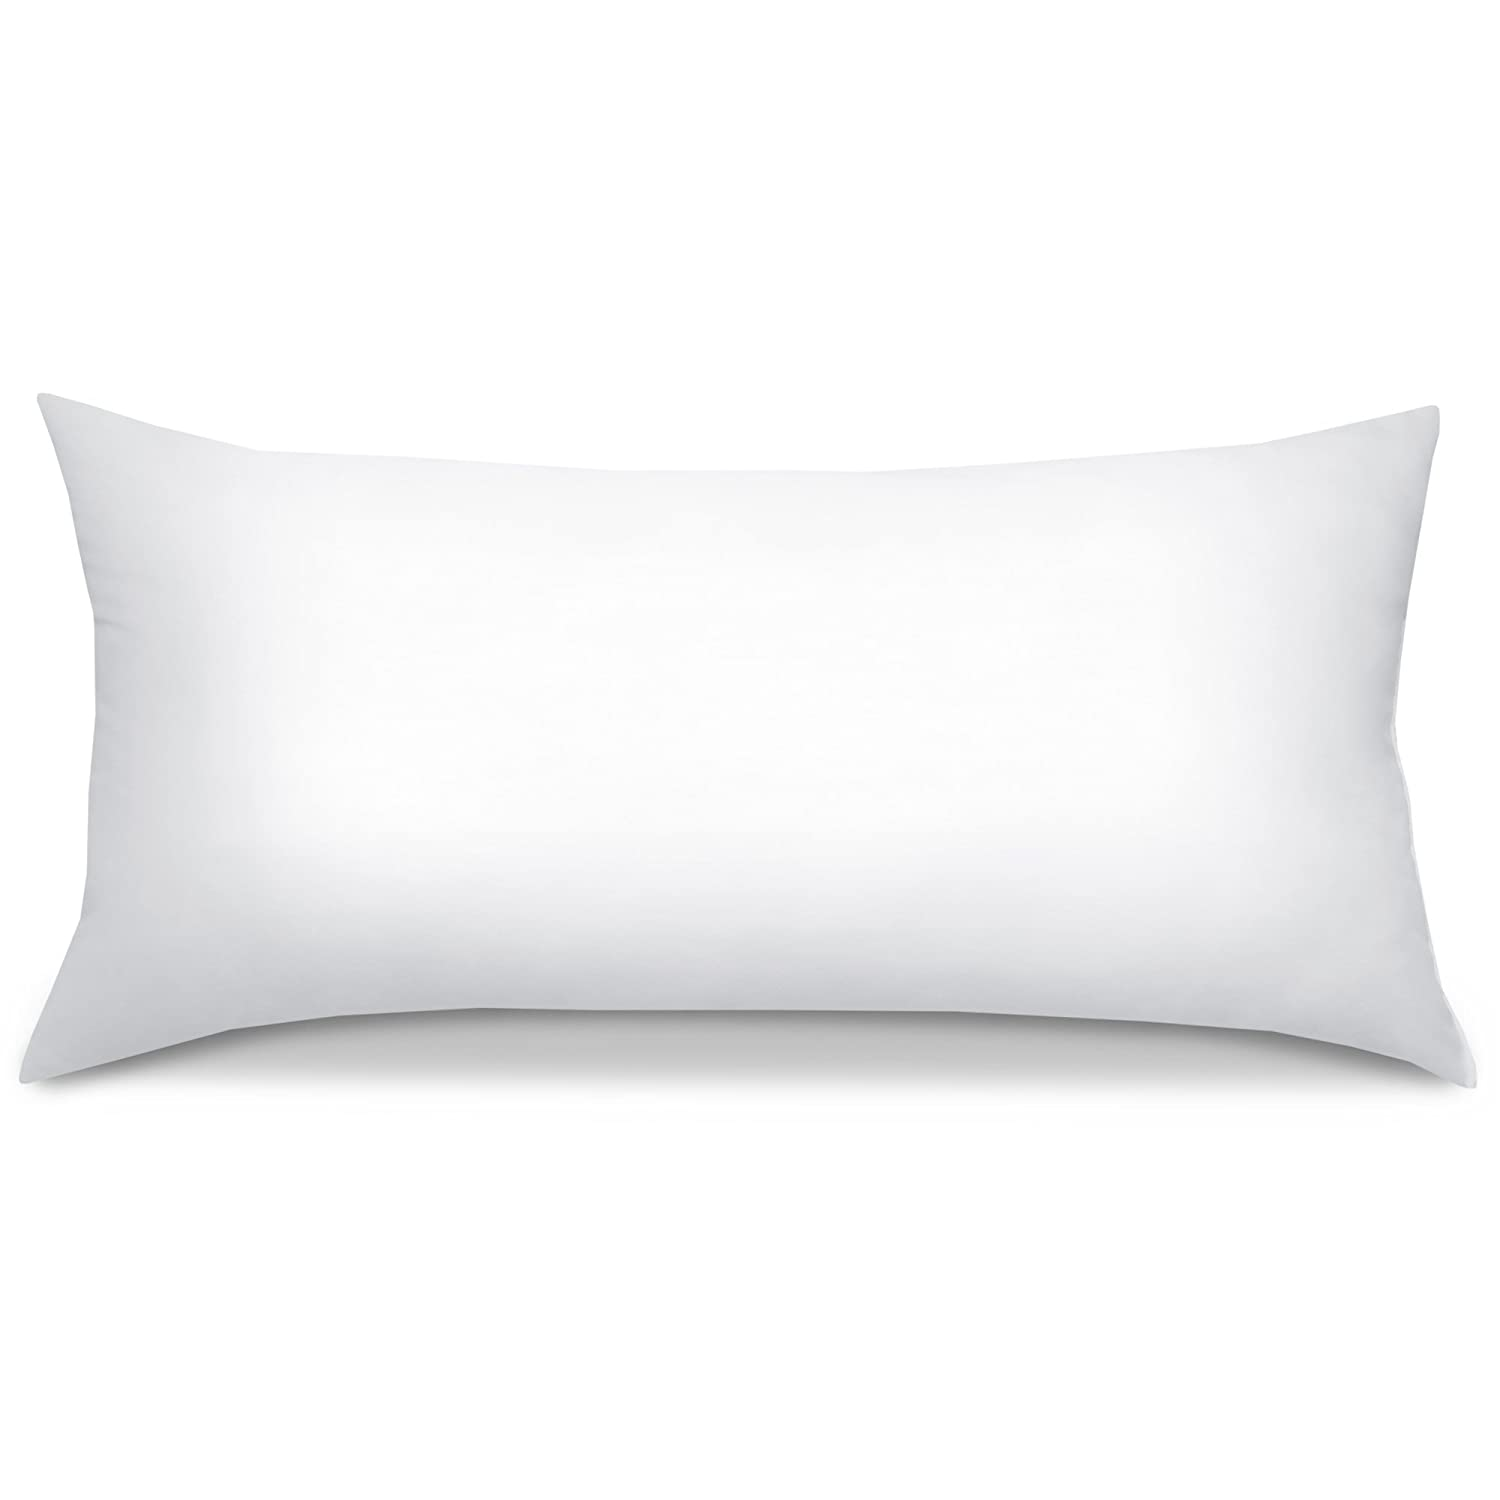 Beautissu BeauNuit UK 2 Set Pillows 40x80 cm Washable Cushion 450 g Microfibre Padding - Inner Seam & Hypoallergenic